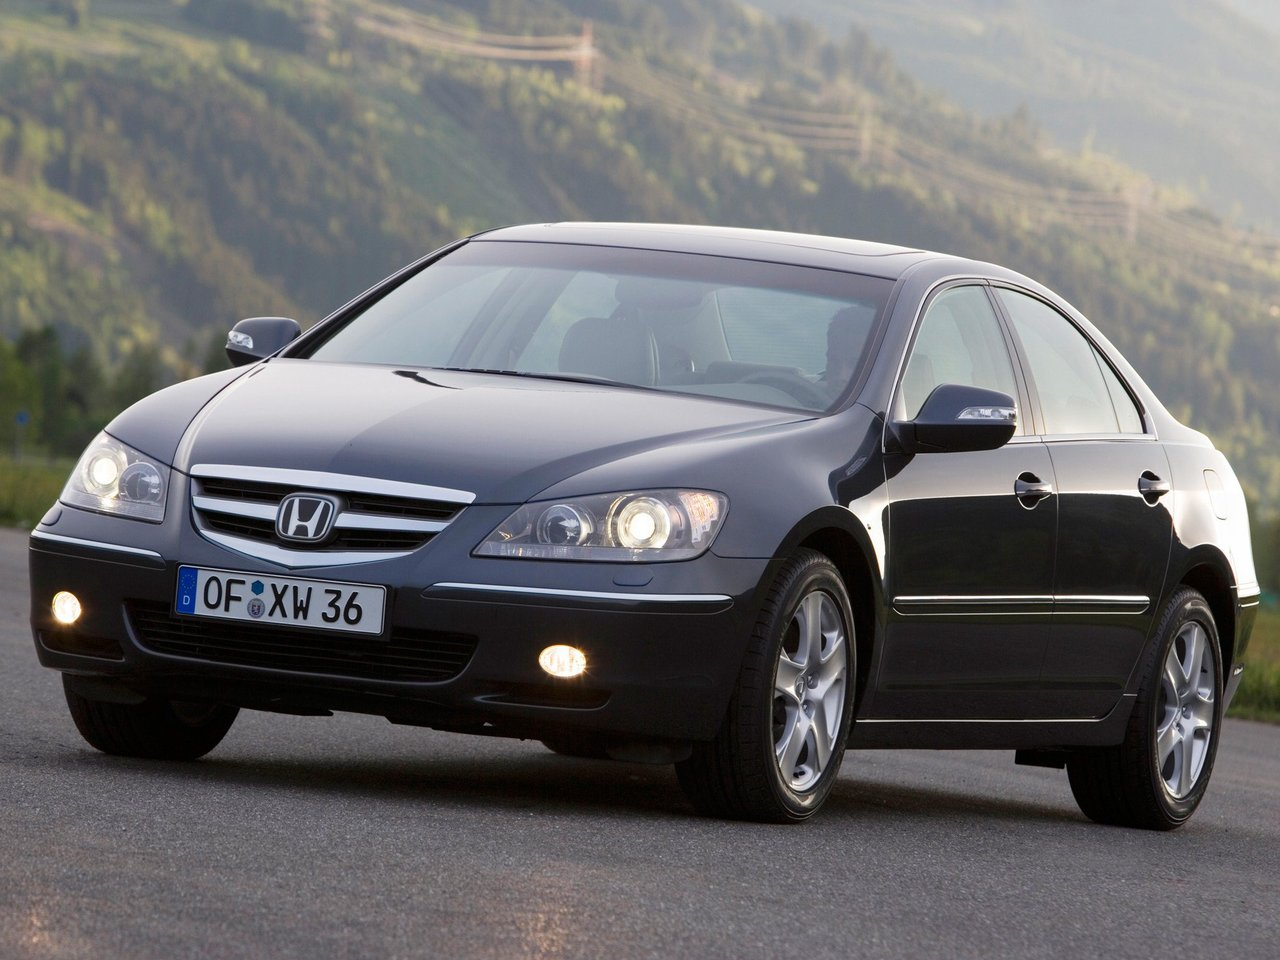 Автомобиль Honda Legend